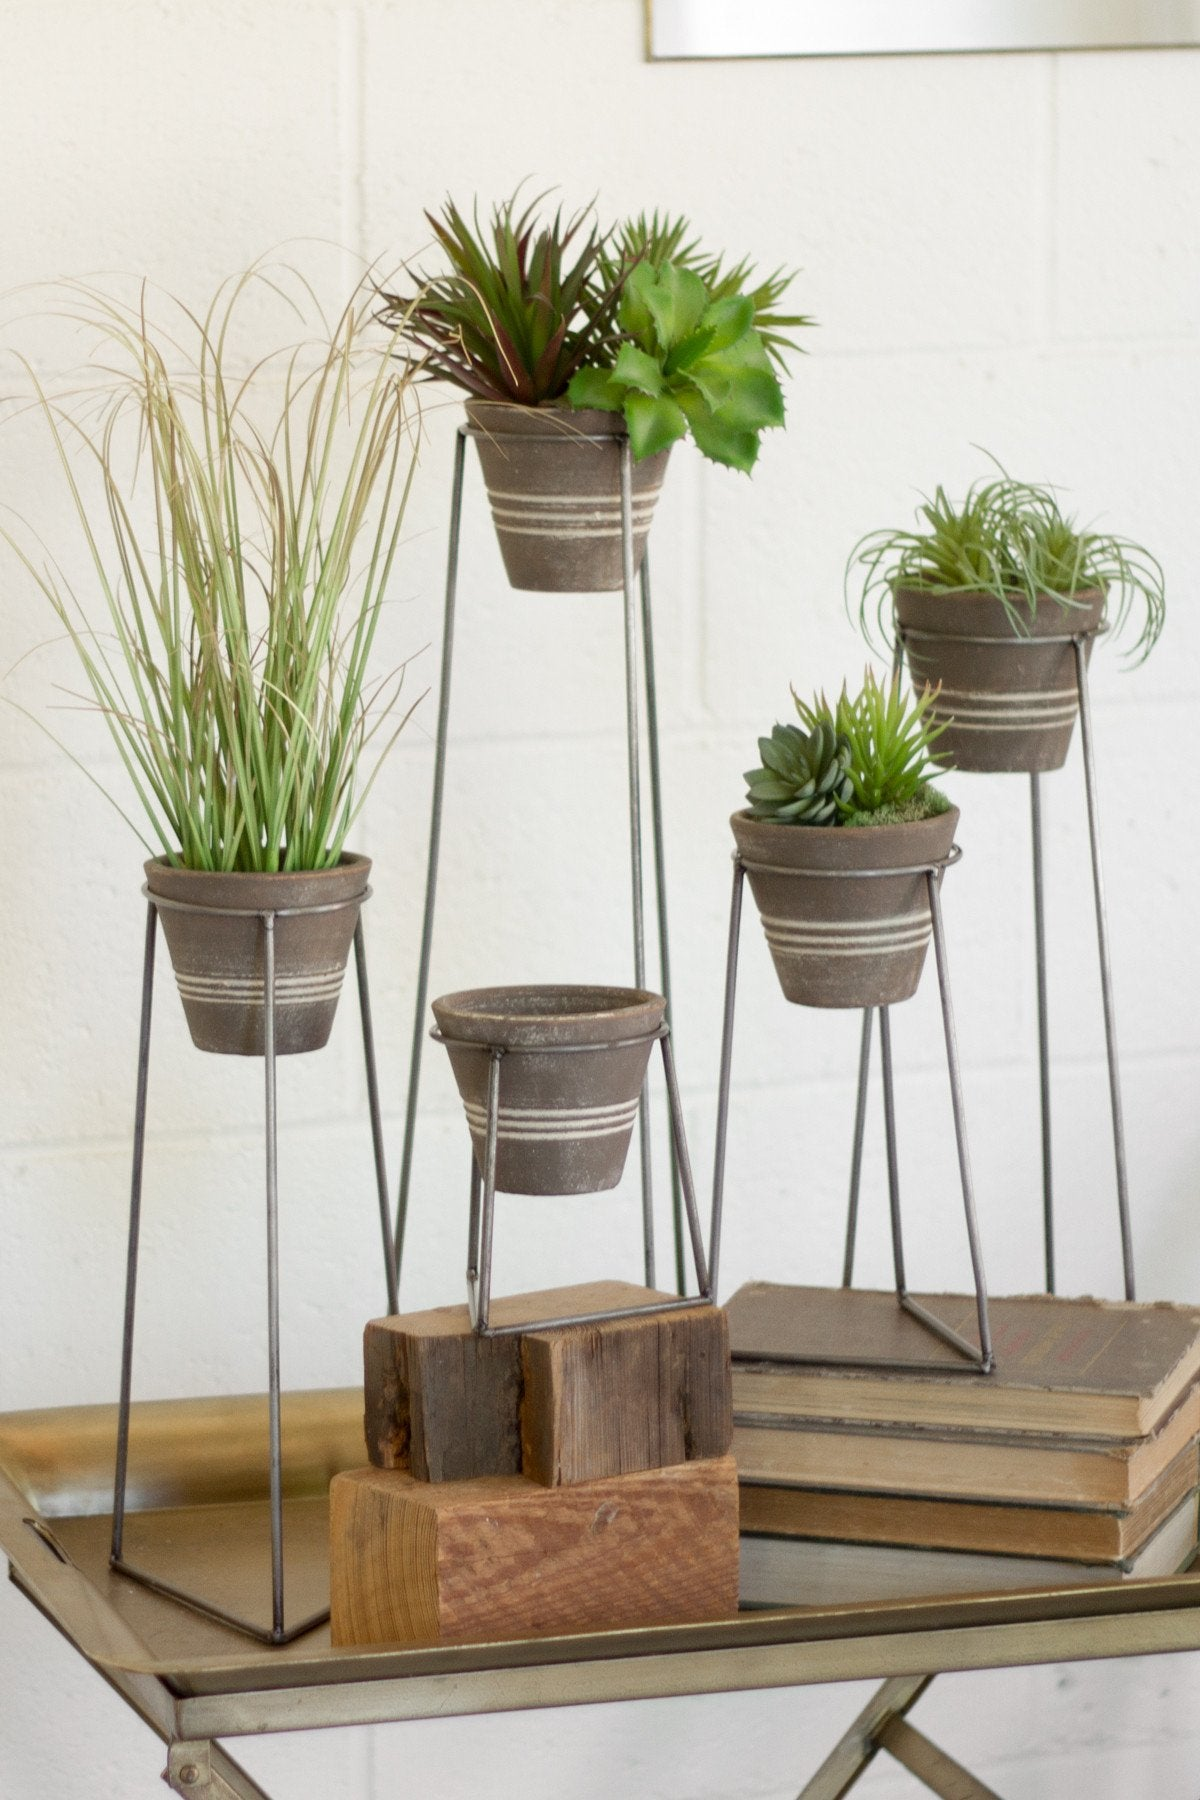 Kalalou Clay Pots With Wire Bases - Set Of 5